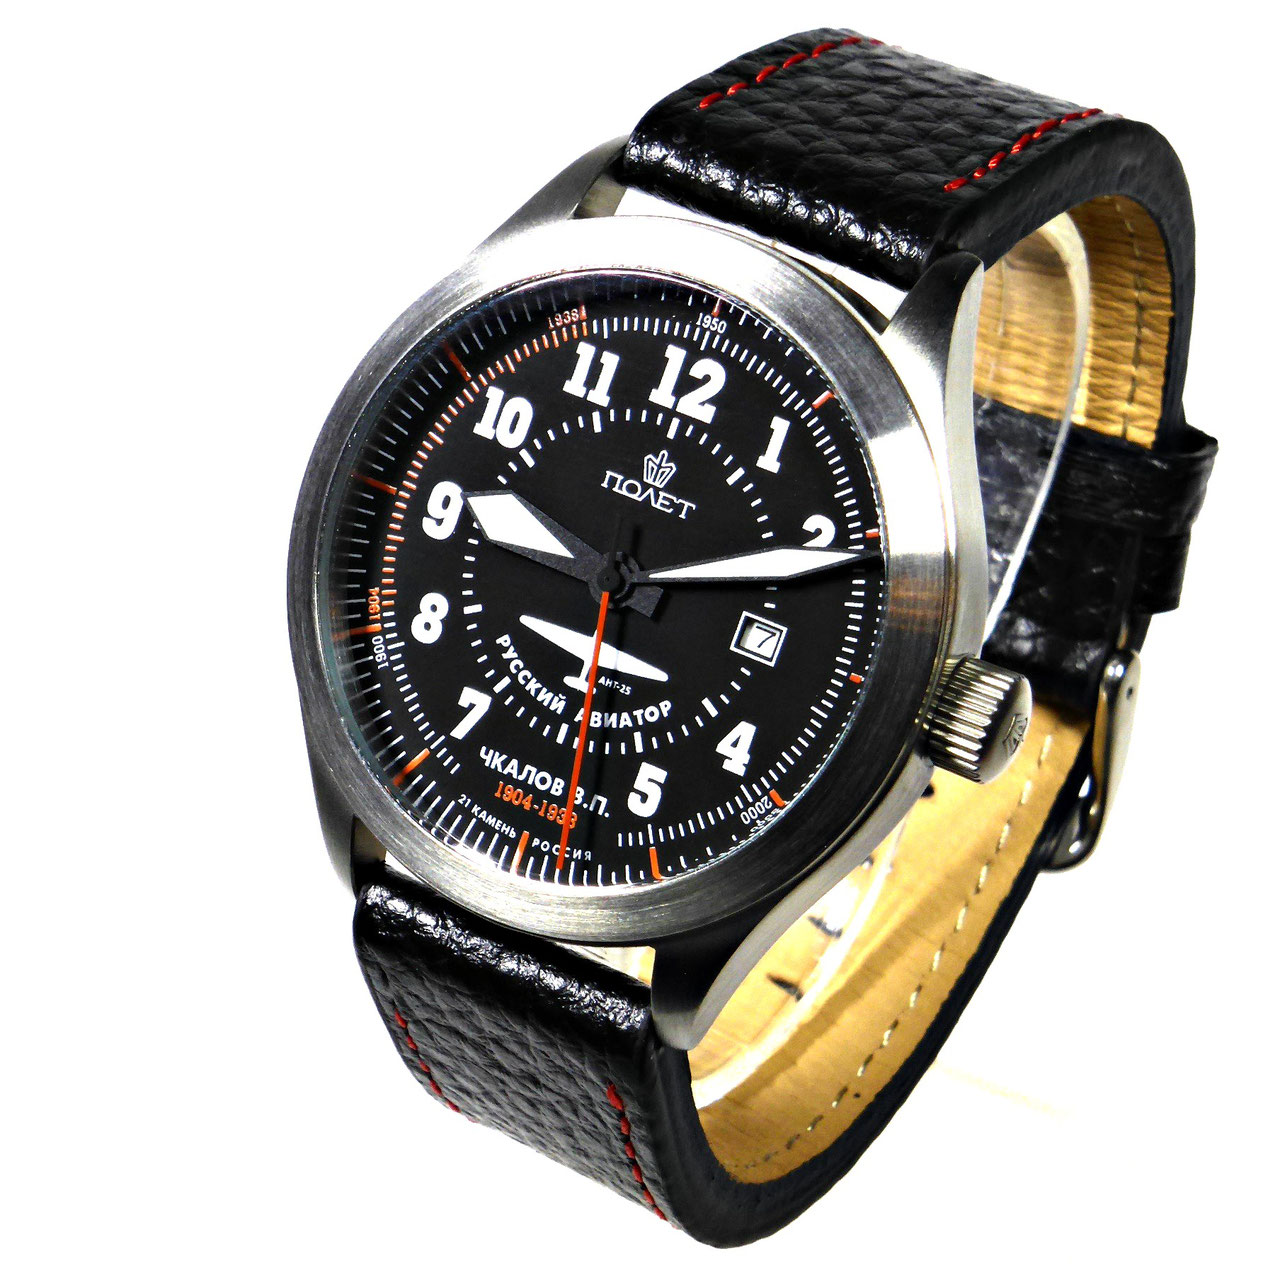 online chotovelli premium unique pilot aviator affordable best watch by products figli watches